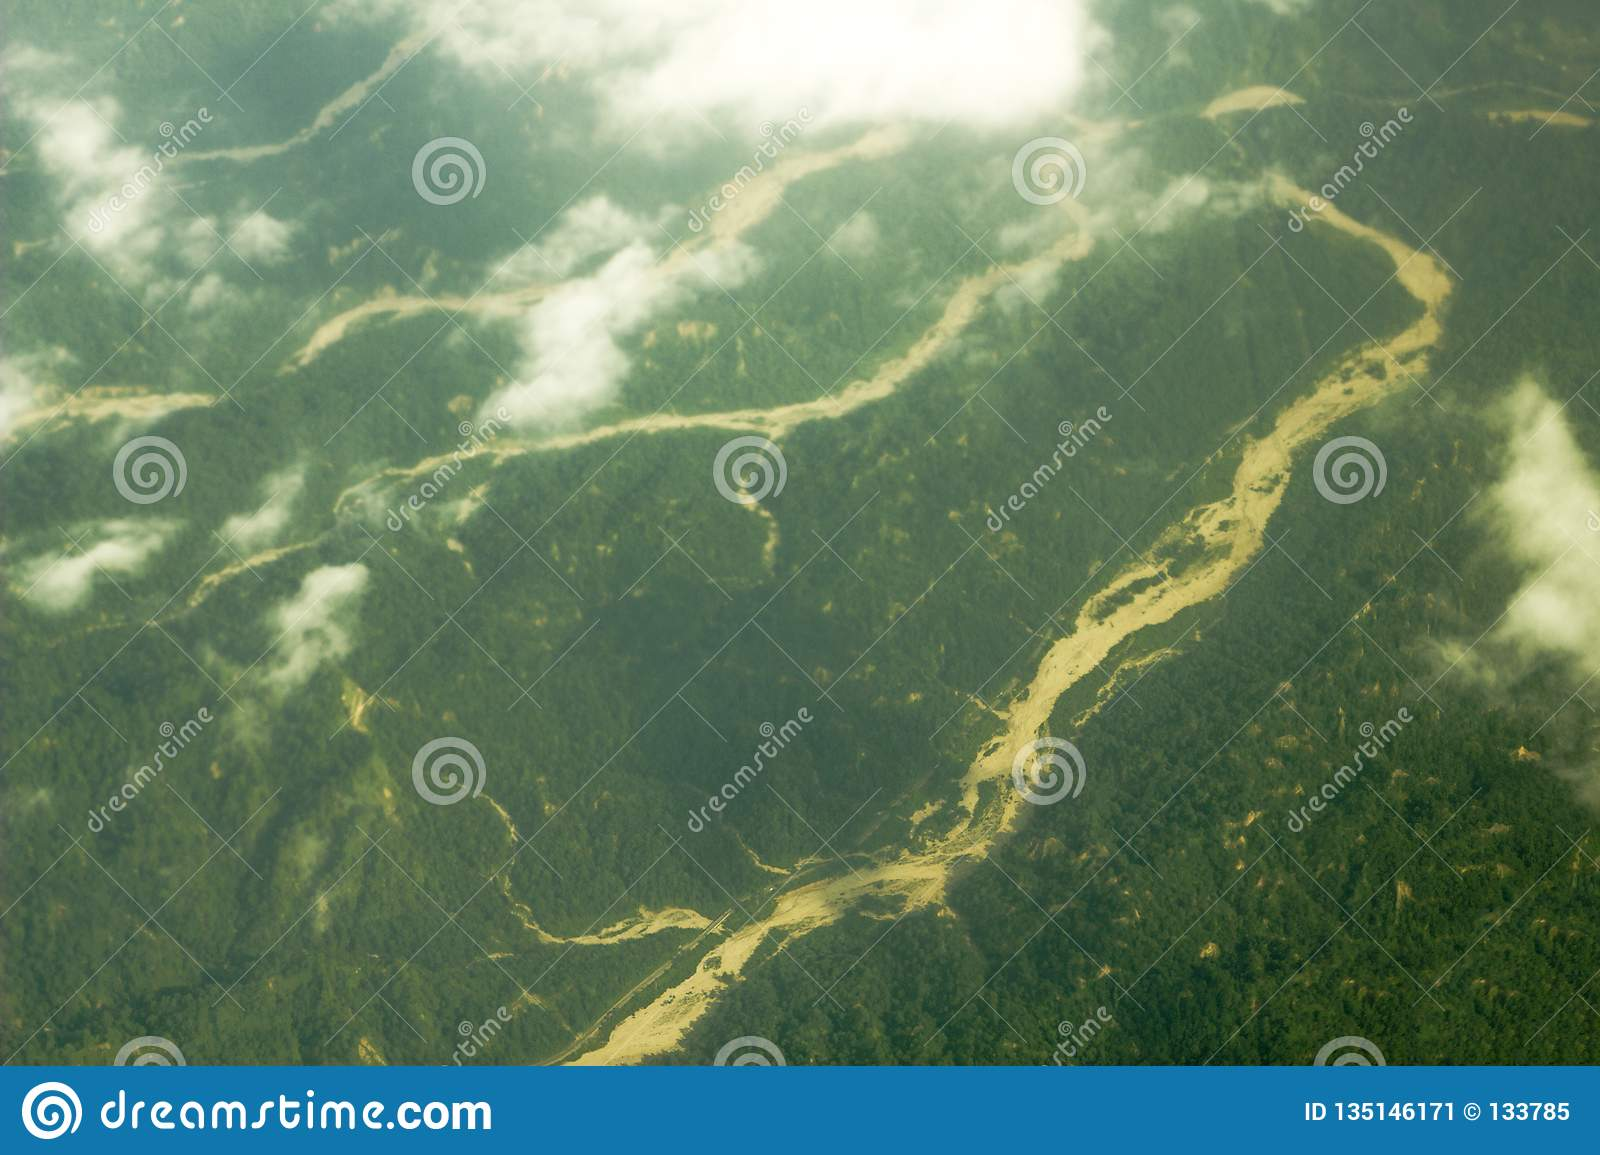 A sandy river bed among hilly green woodland. aerial photography white clouds over the valley